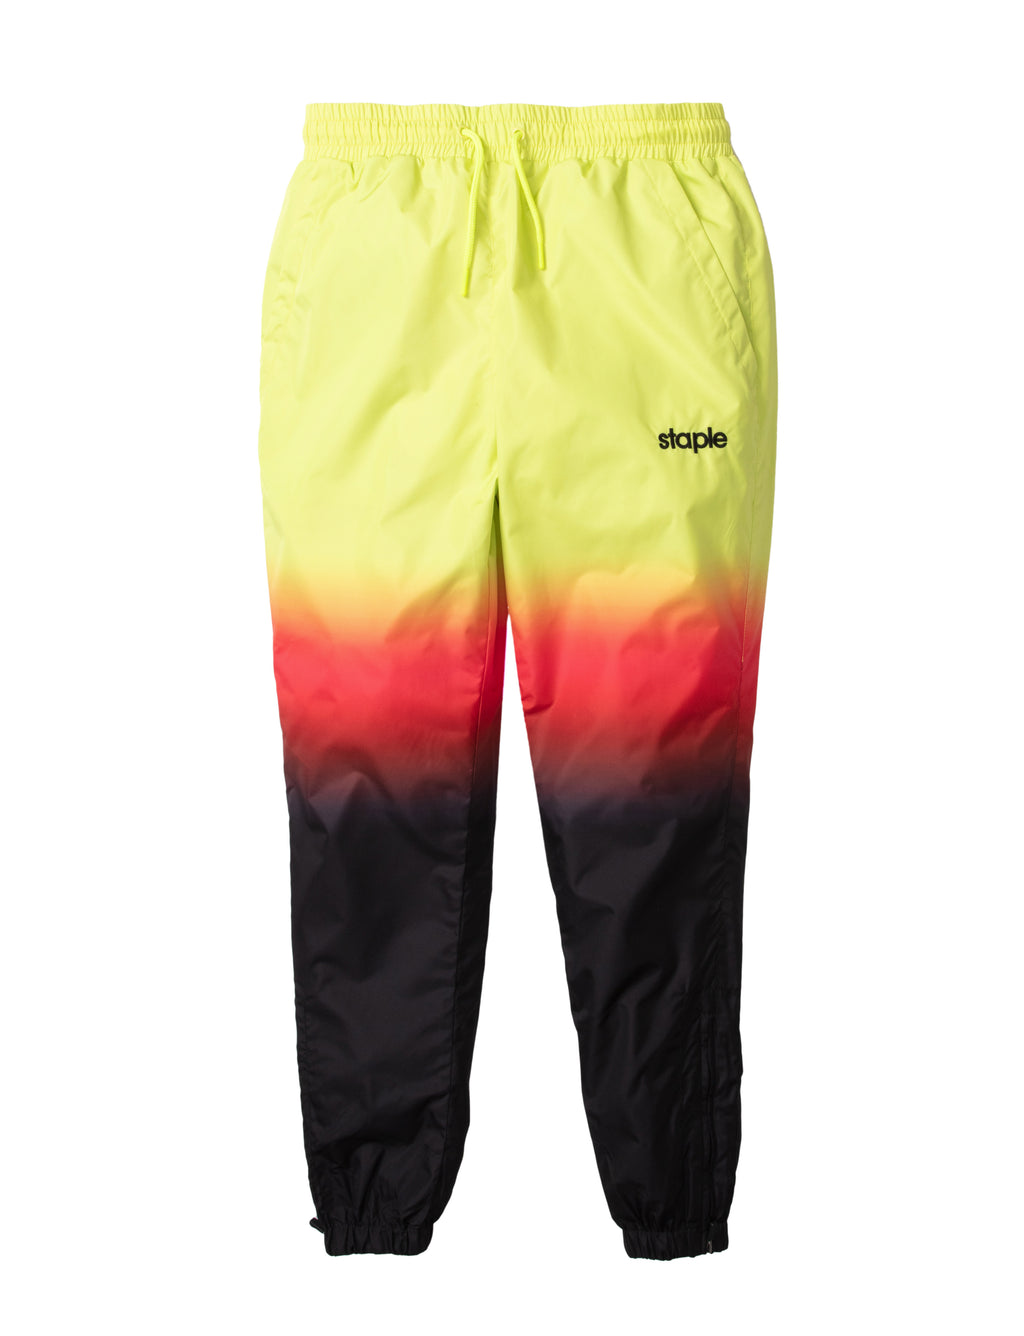 Race Fade Nylon Pants - Pants | Staple Pigeon